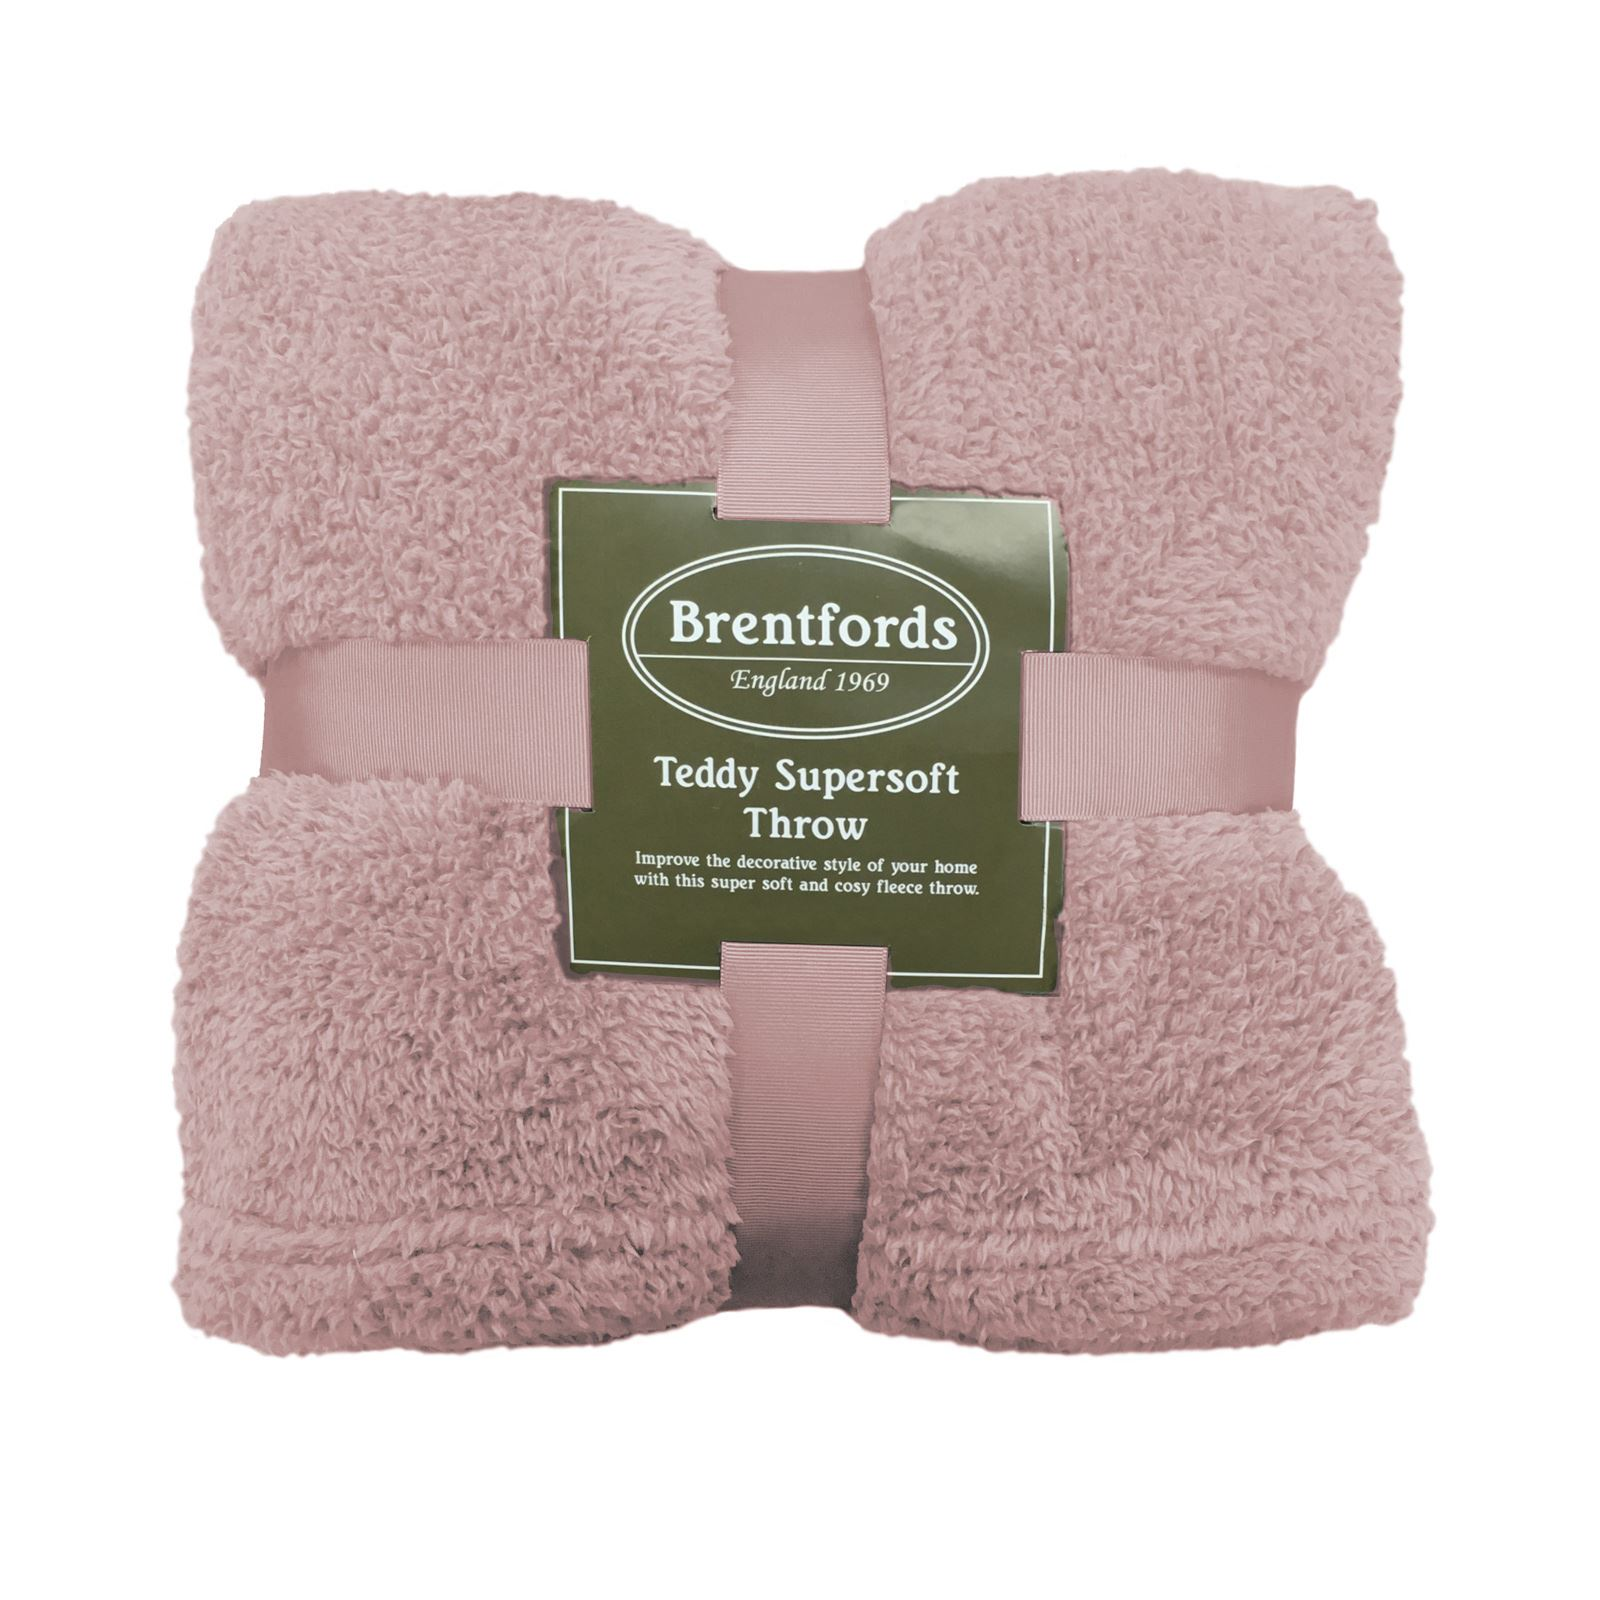 thumbnail 10 - Brentfords Teddy Fleece Bear Blanket Large Throw Over Bed Plush Soft Bedspread